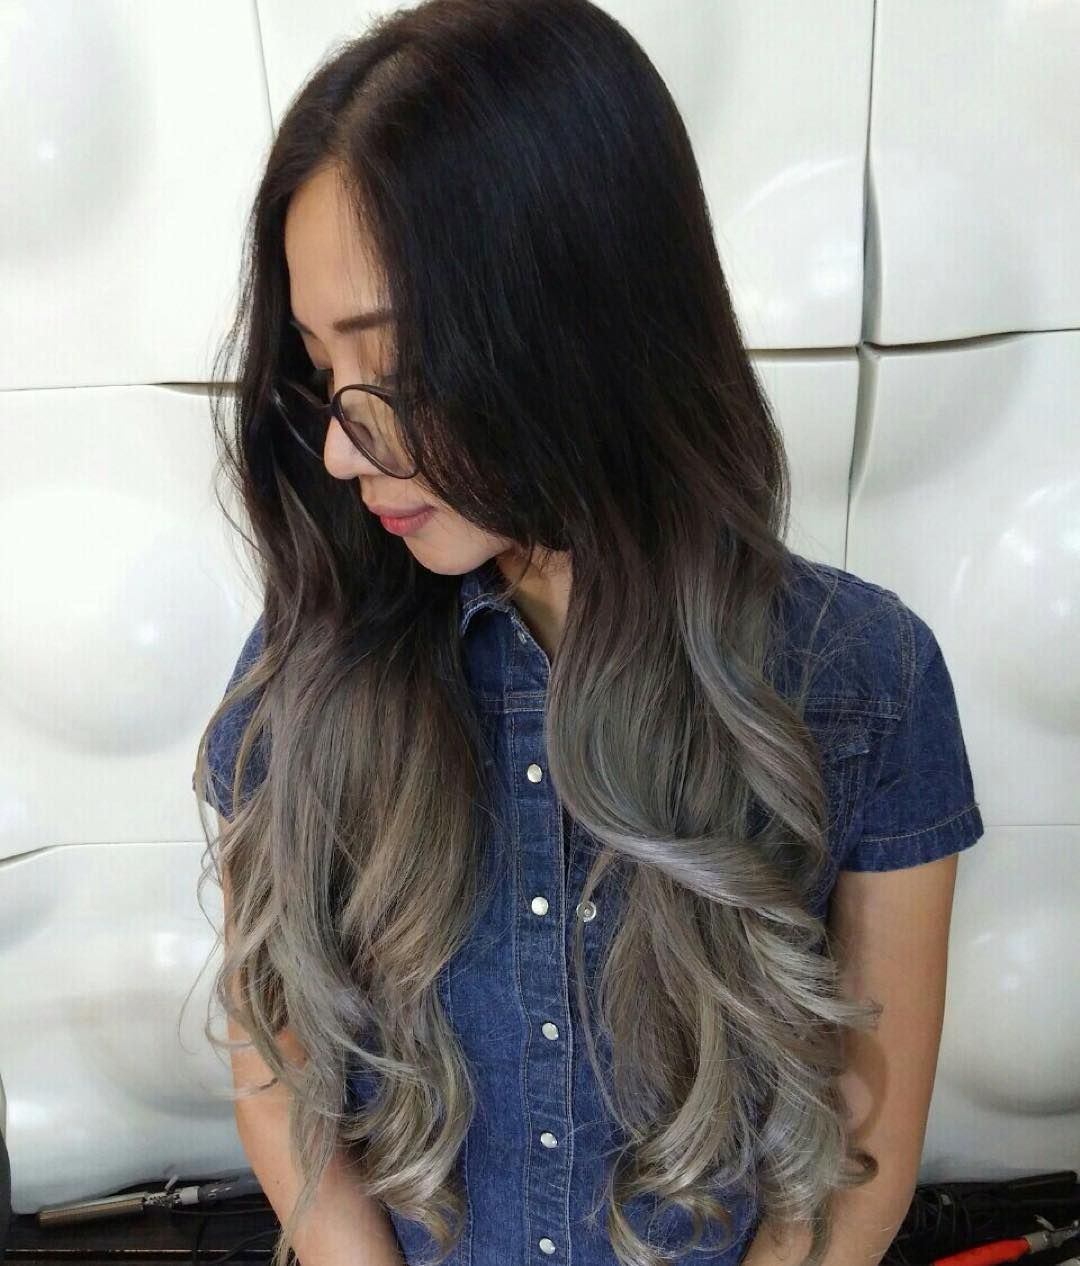 Sexyside hairshaft hairshaftsalonthatcares mikover for inquiries